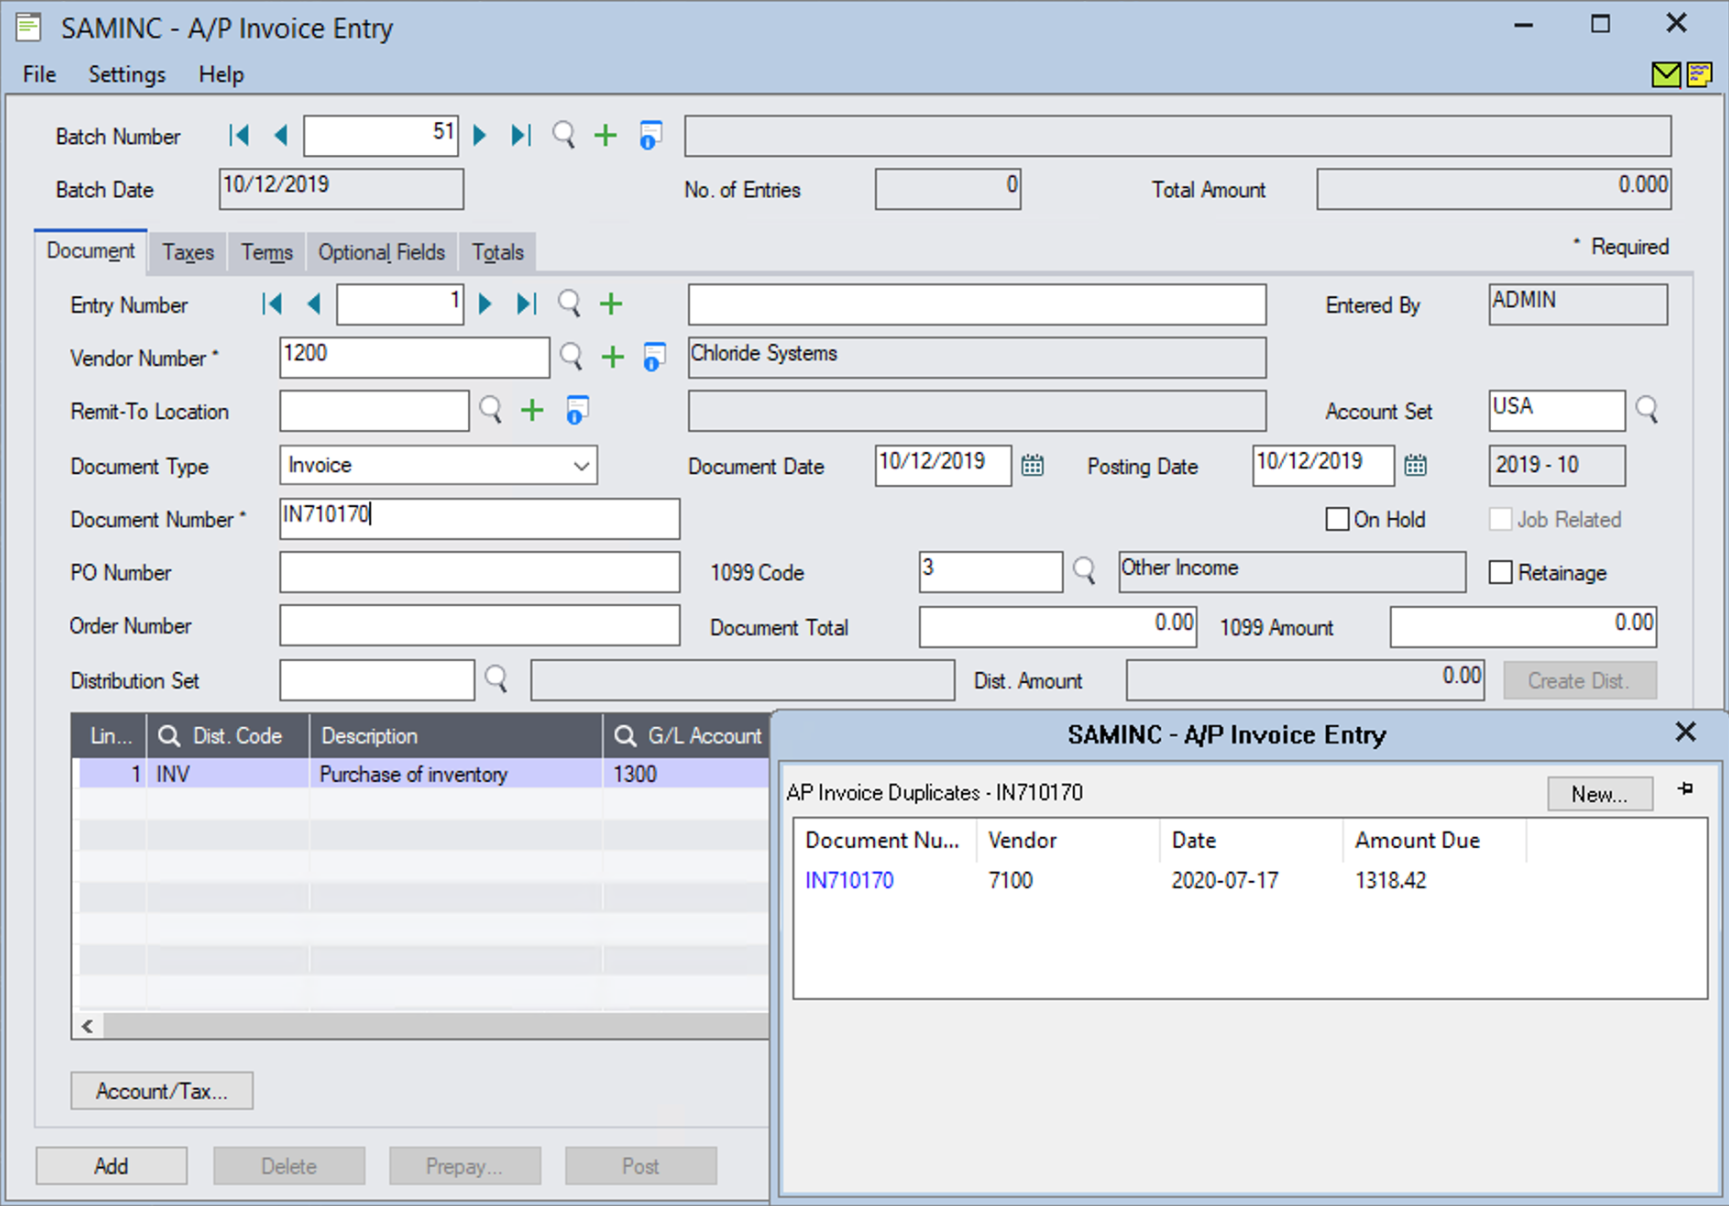 Matching invoices are displayed in a grid.